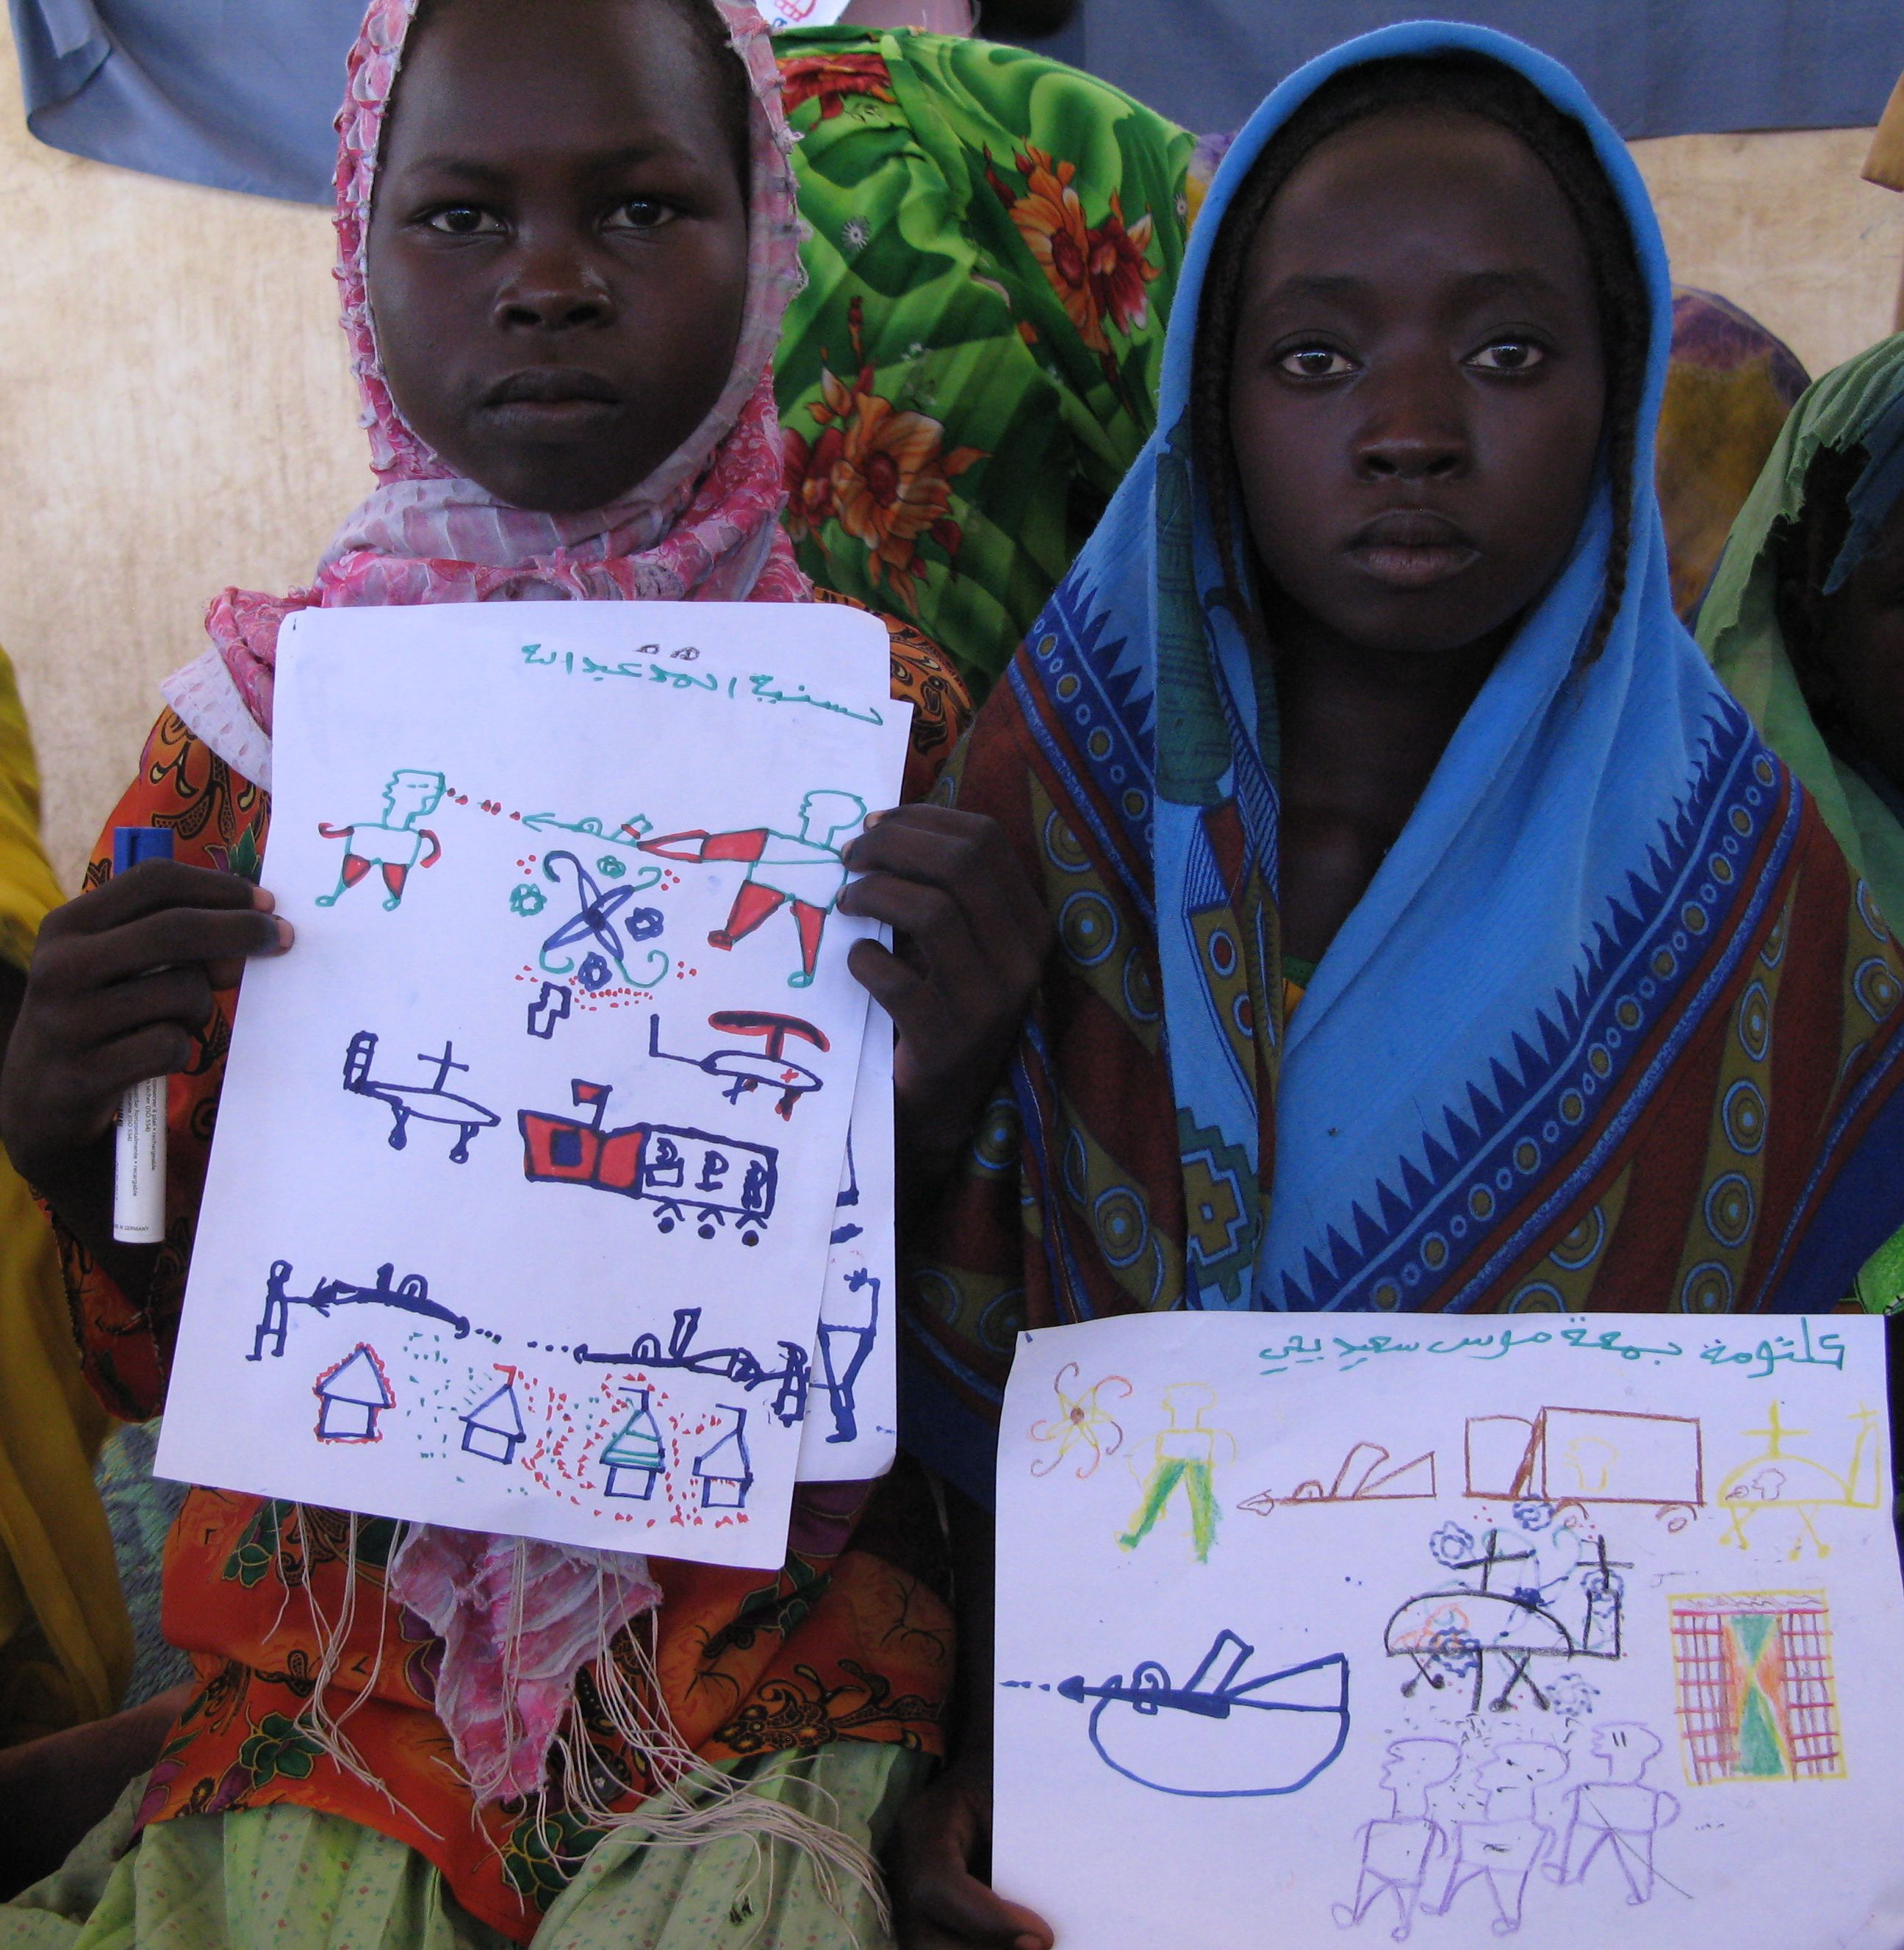 Darfuri girls in the Djabal Refugee Camp hold drawings of the violence they witnessed